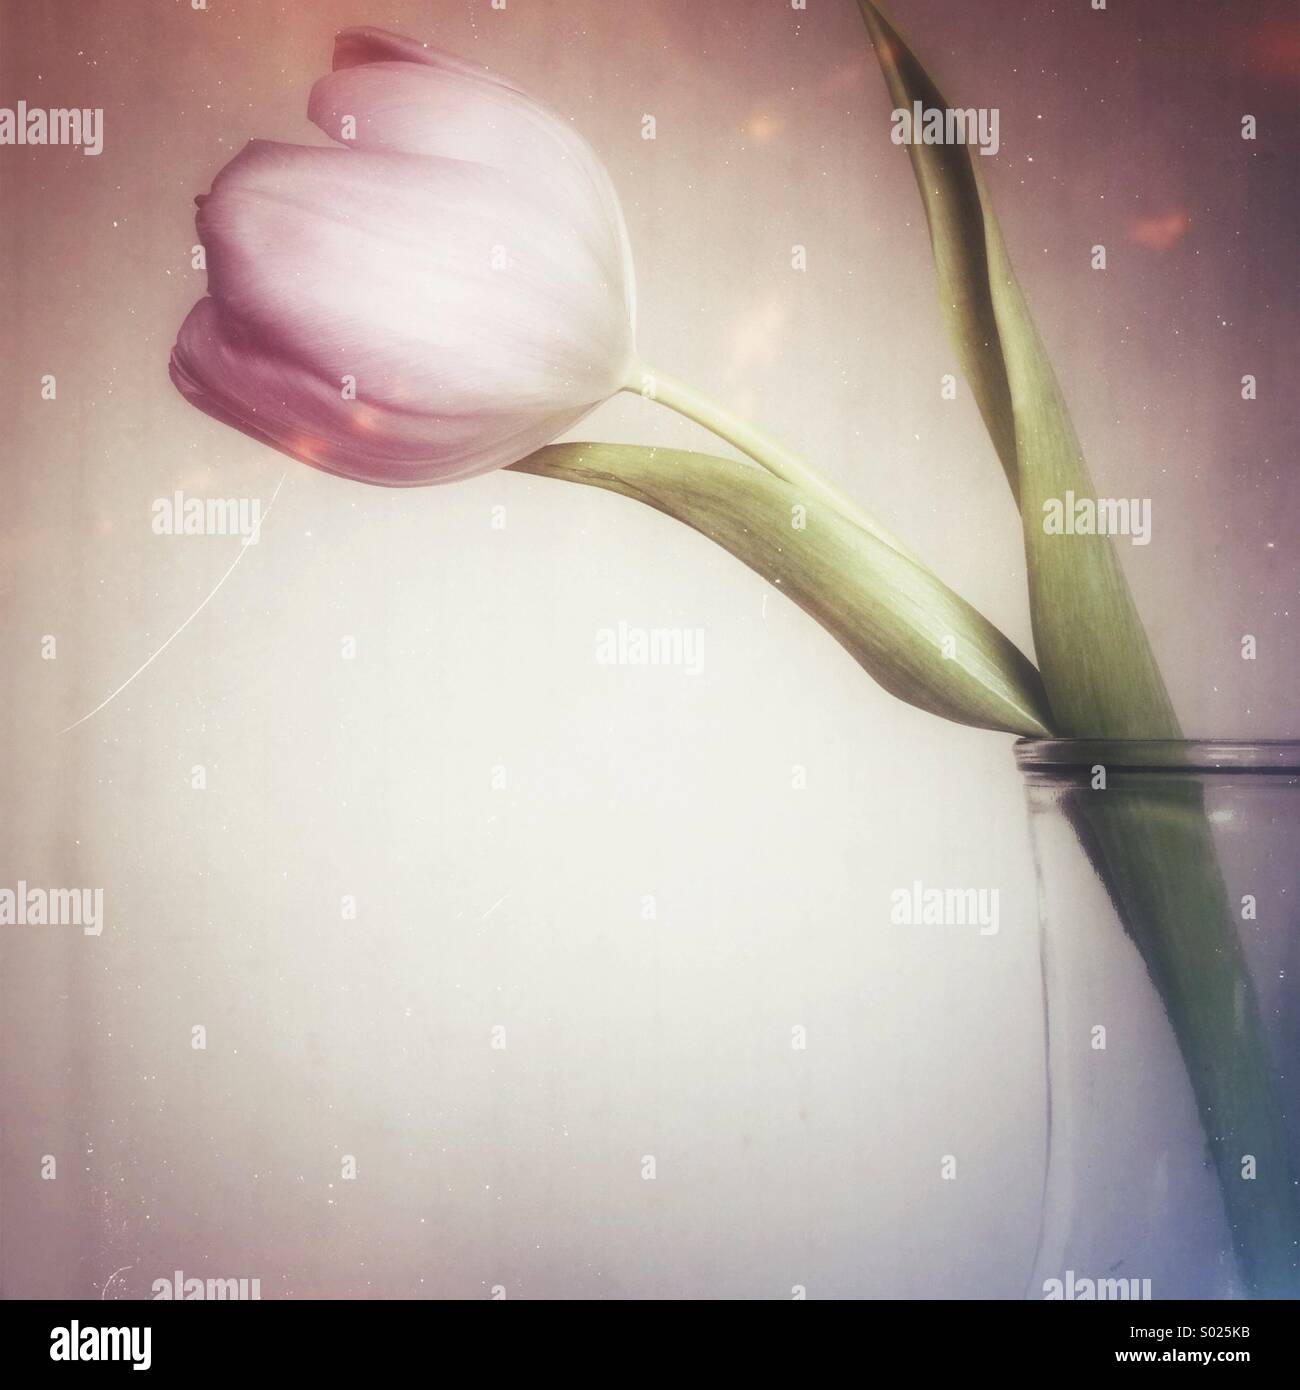 Tulip in glass vase - Stock Image